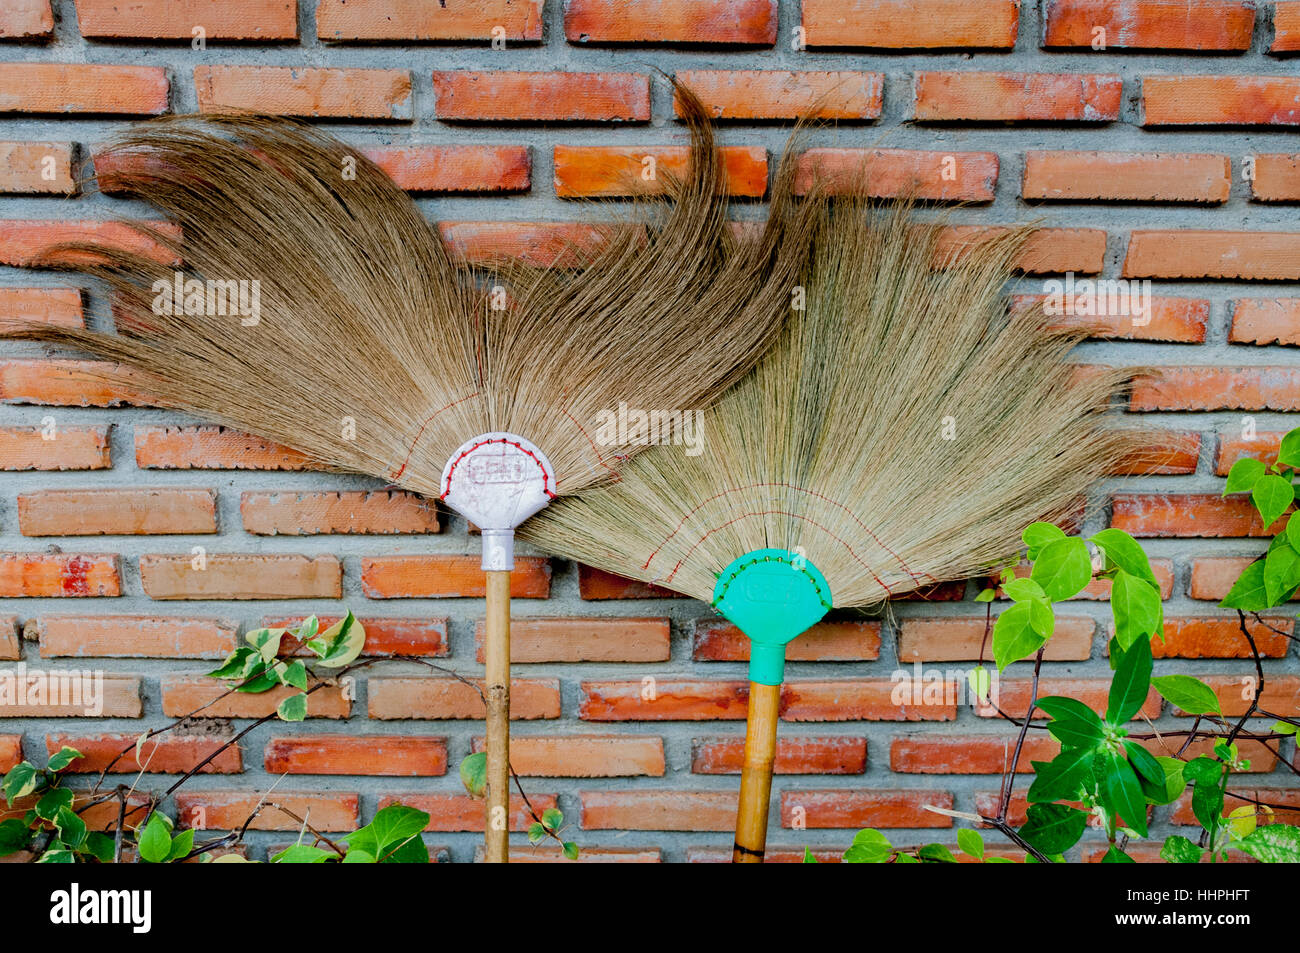 Two traditional Thai brooms against a brick wall, with some green leaves, in Ban Chiang, Northeast Thailand. - Stock Image